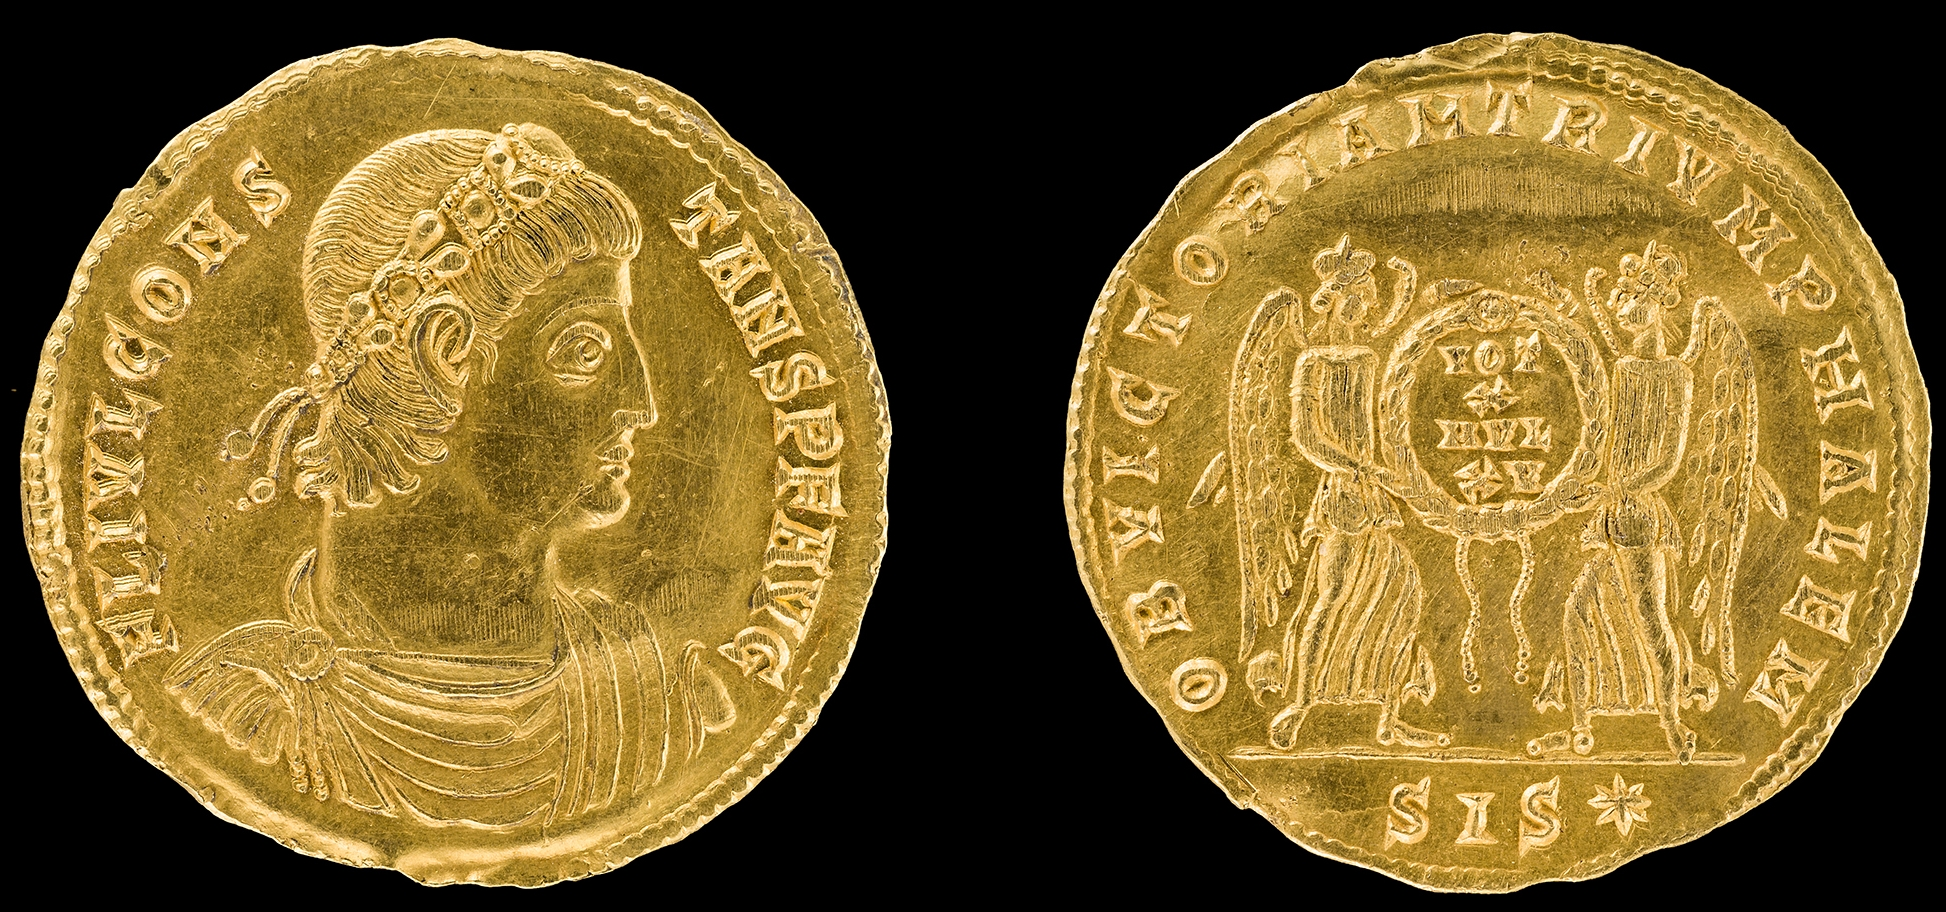 The History Blog » Blog Archive » Unique Roman gold coin found in